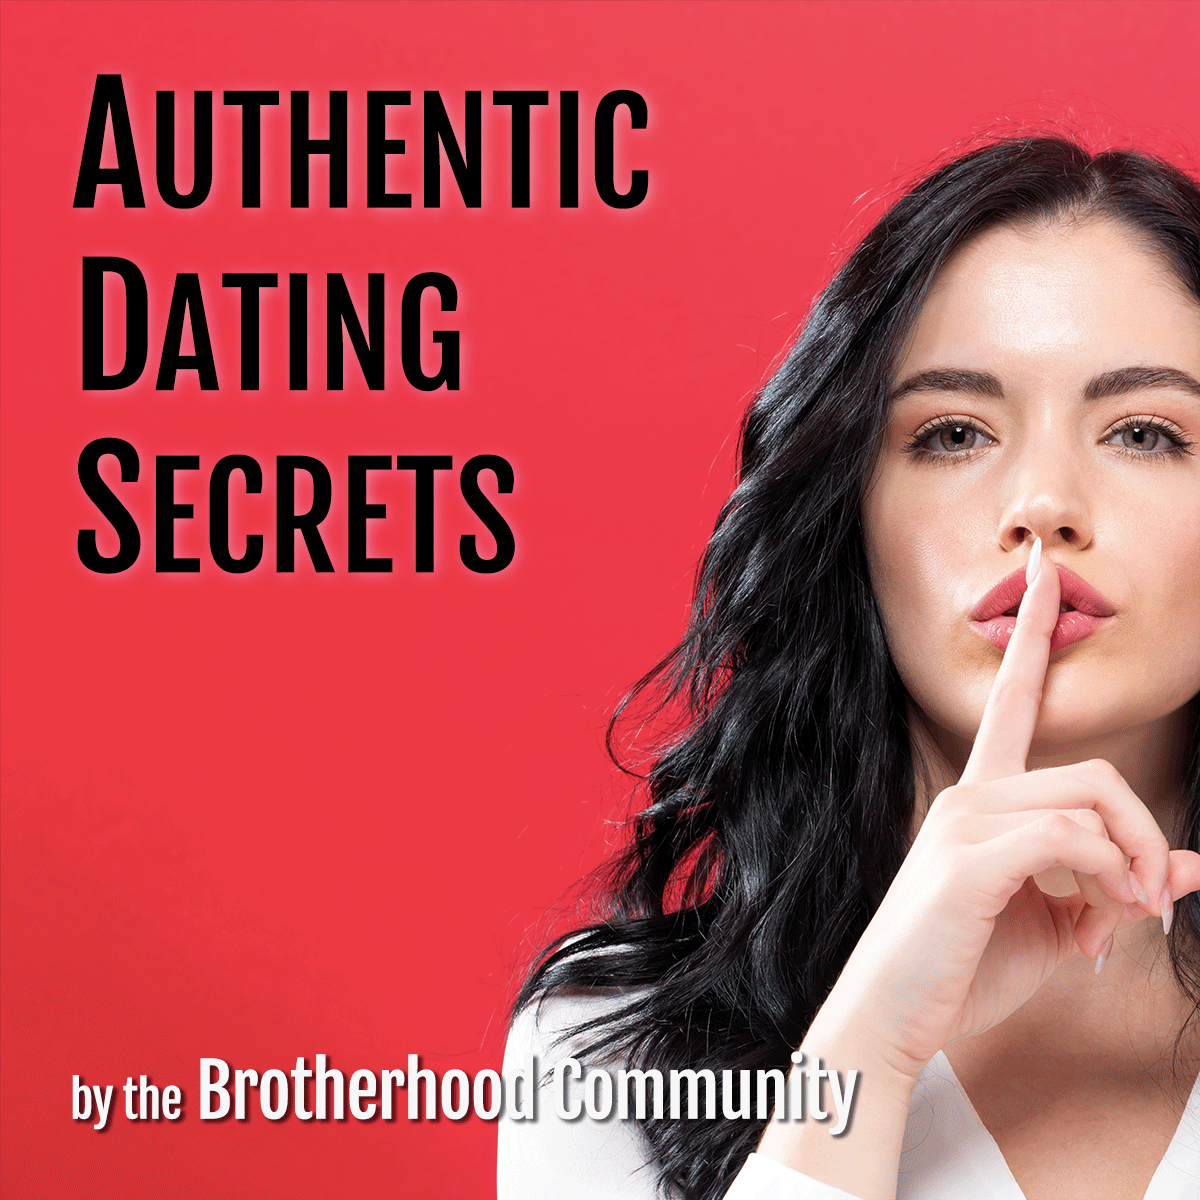 Authentic-Dating-Secrets-Square-New.png